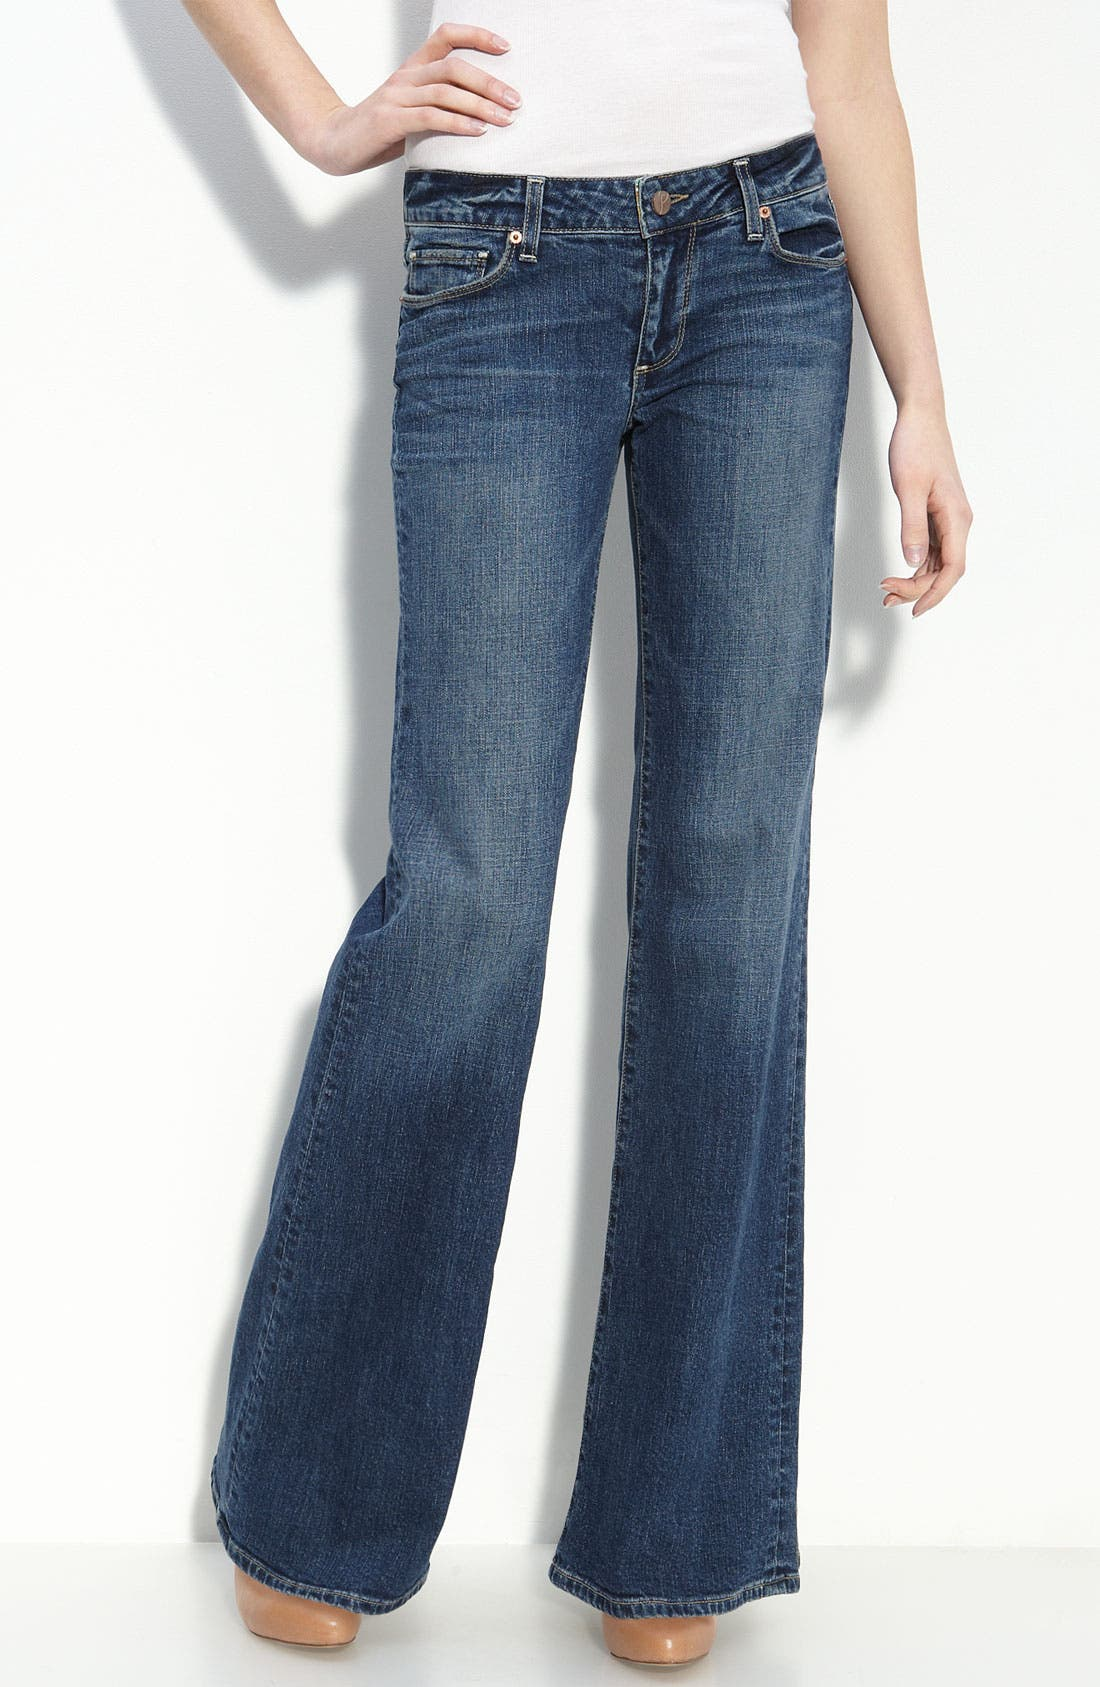 Alternate Image 1 Selected - Paige Denim 'Bentley' Stretch Denim Trouser Jeans (Colette Wash)